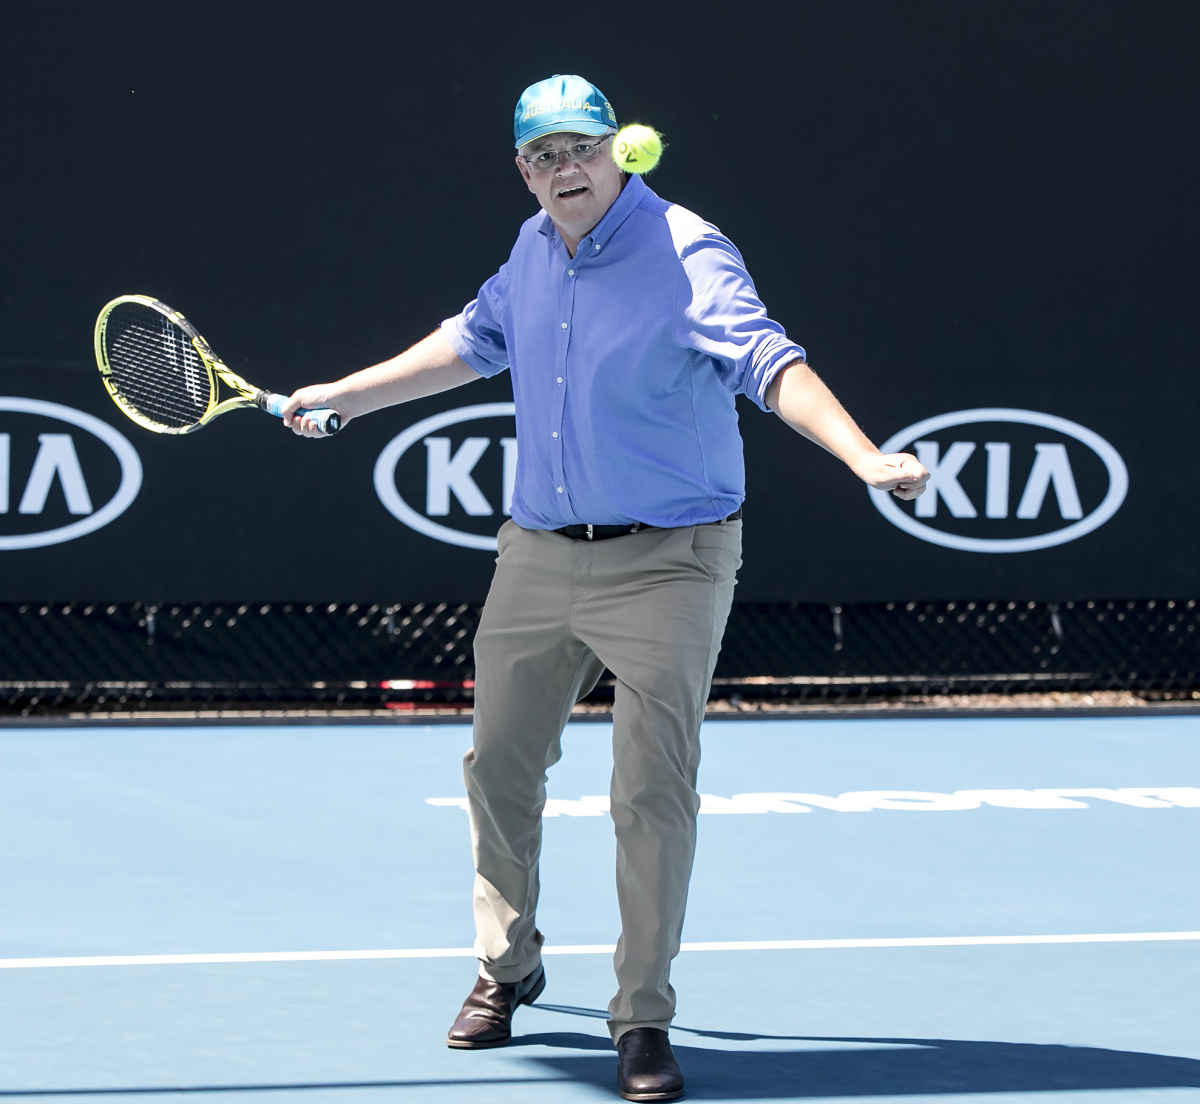 Scott Morrison plays tennis